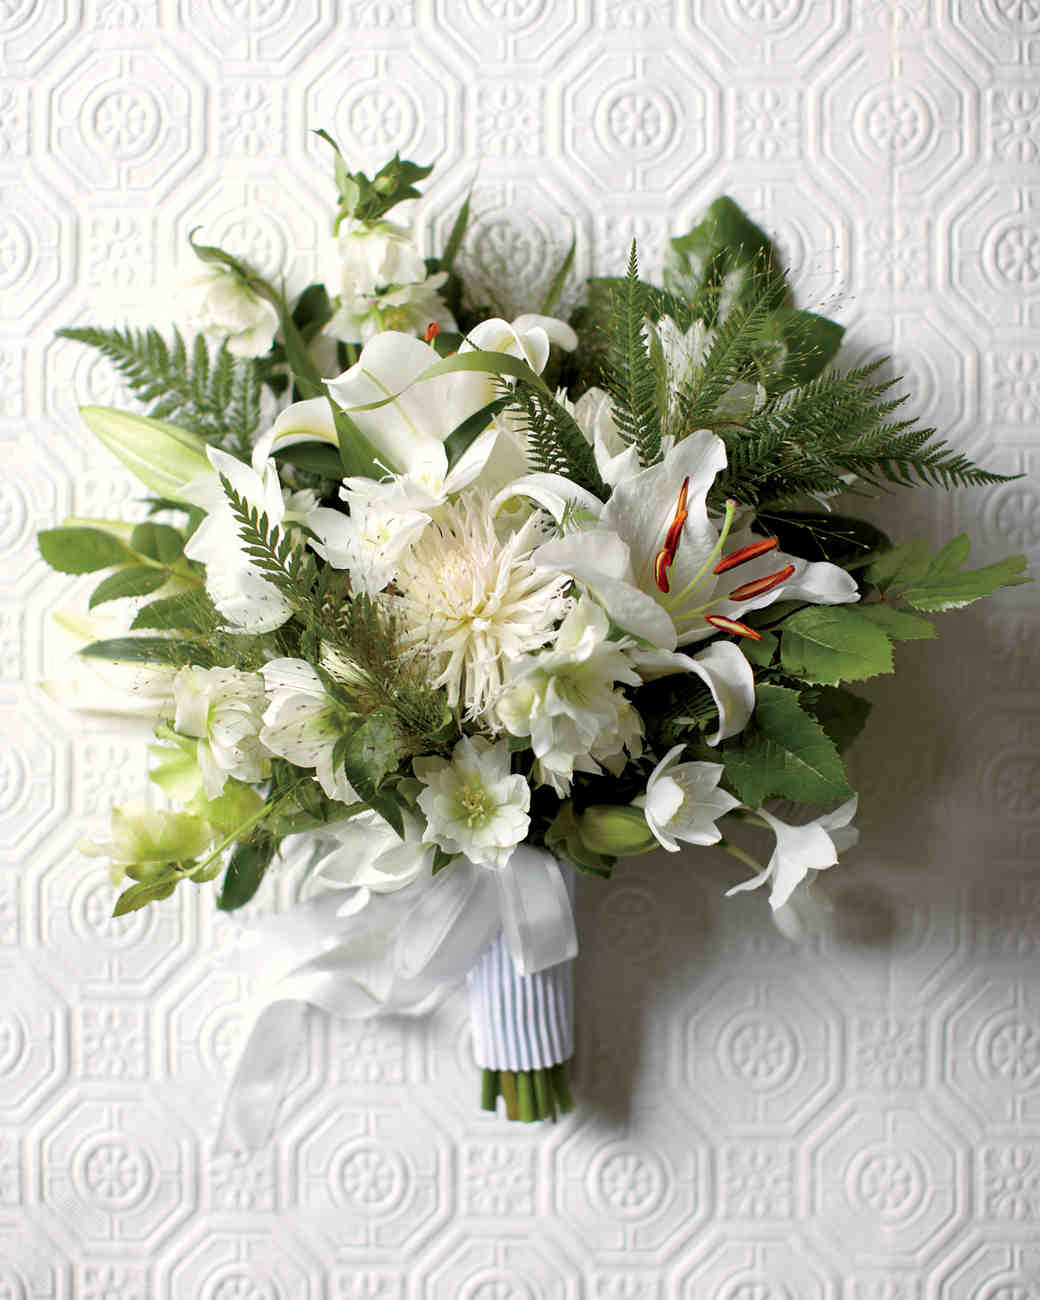 7 Insider Tricks for Creating Amazing Wedding Flowers | Martha ...